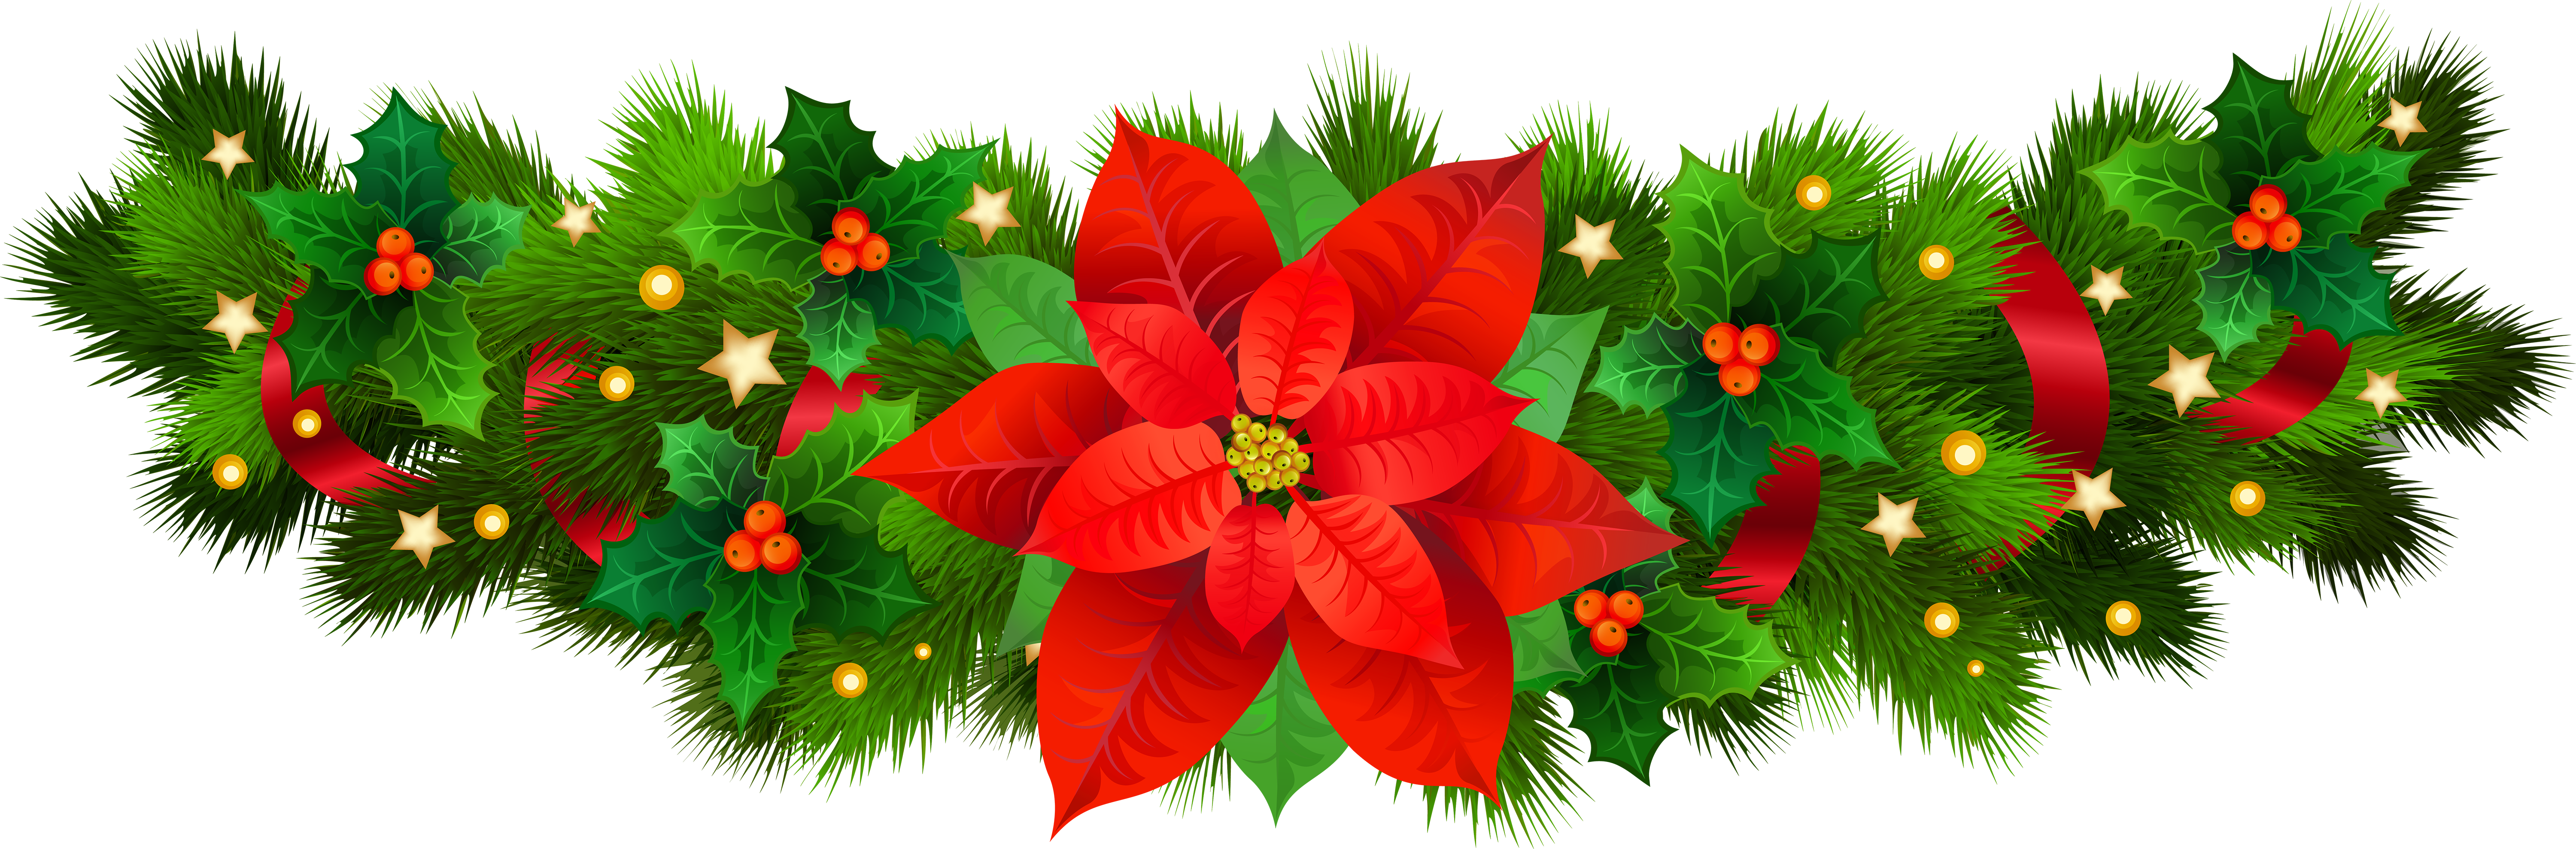 Christmas decorative with png. Holly clipart poinsettia